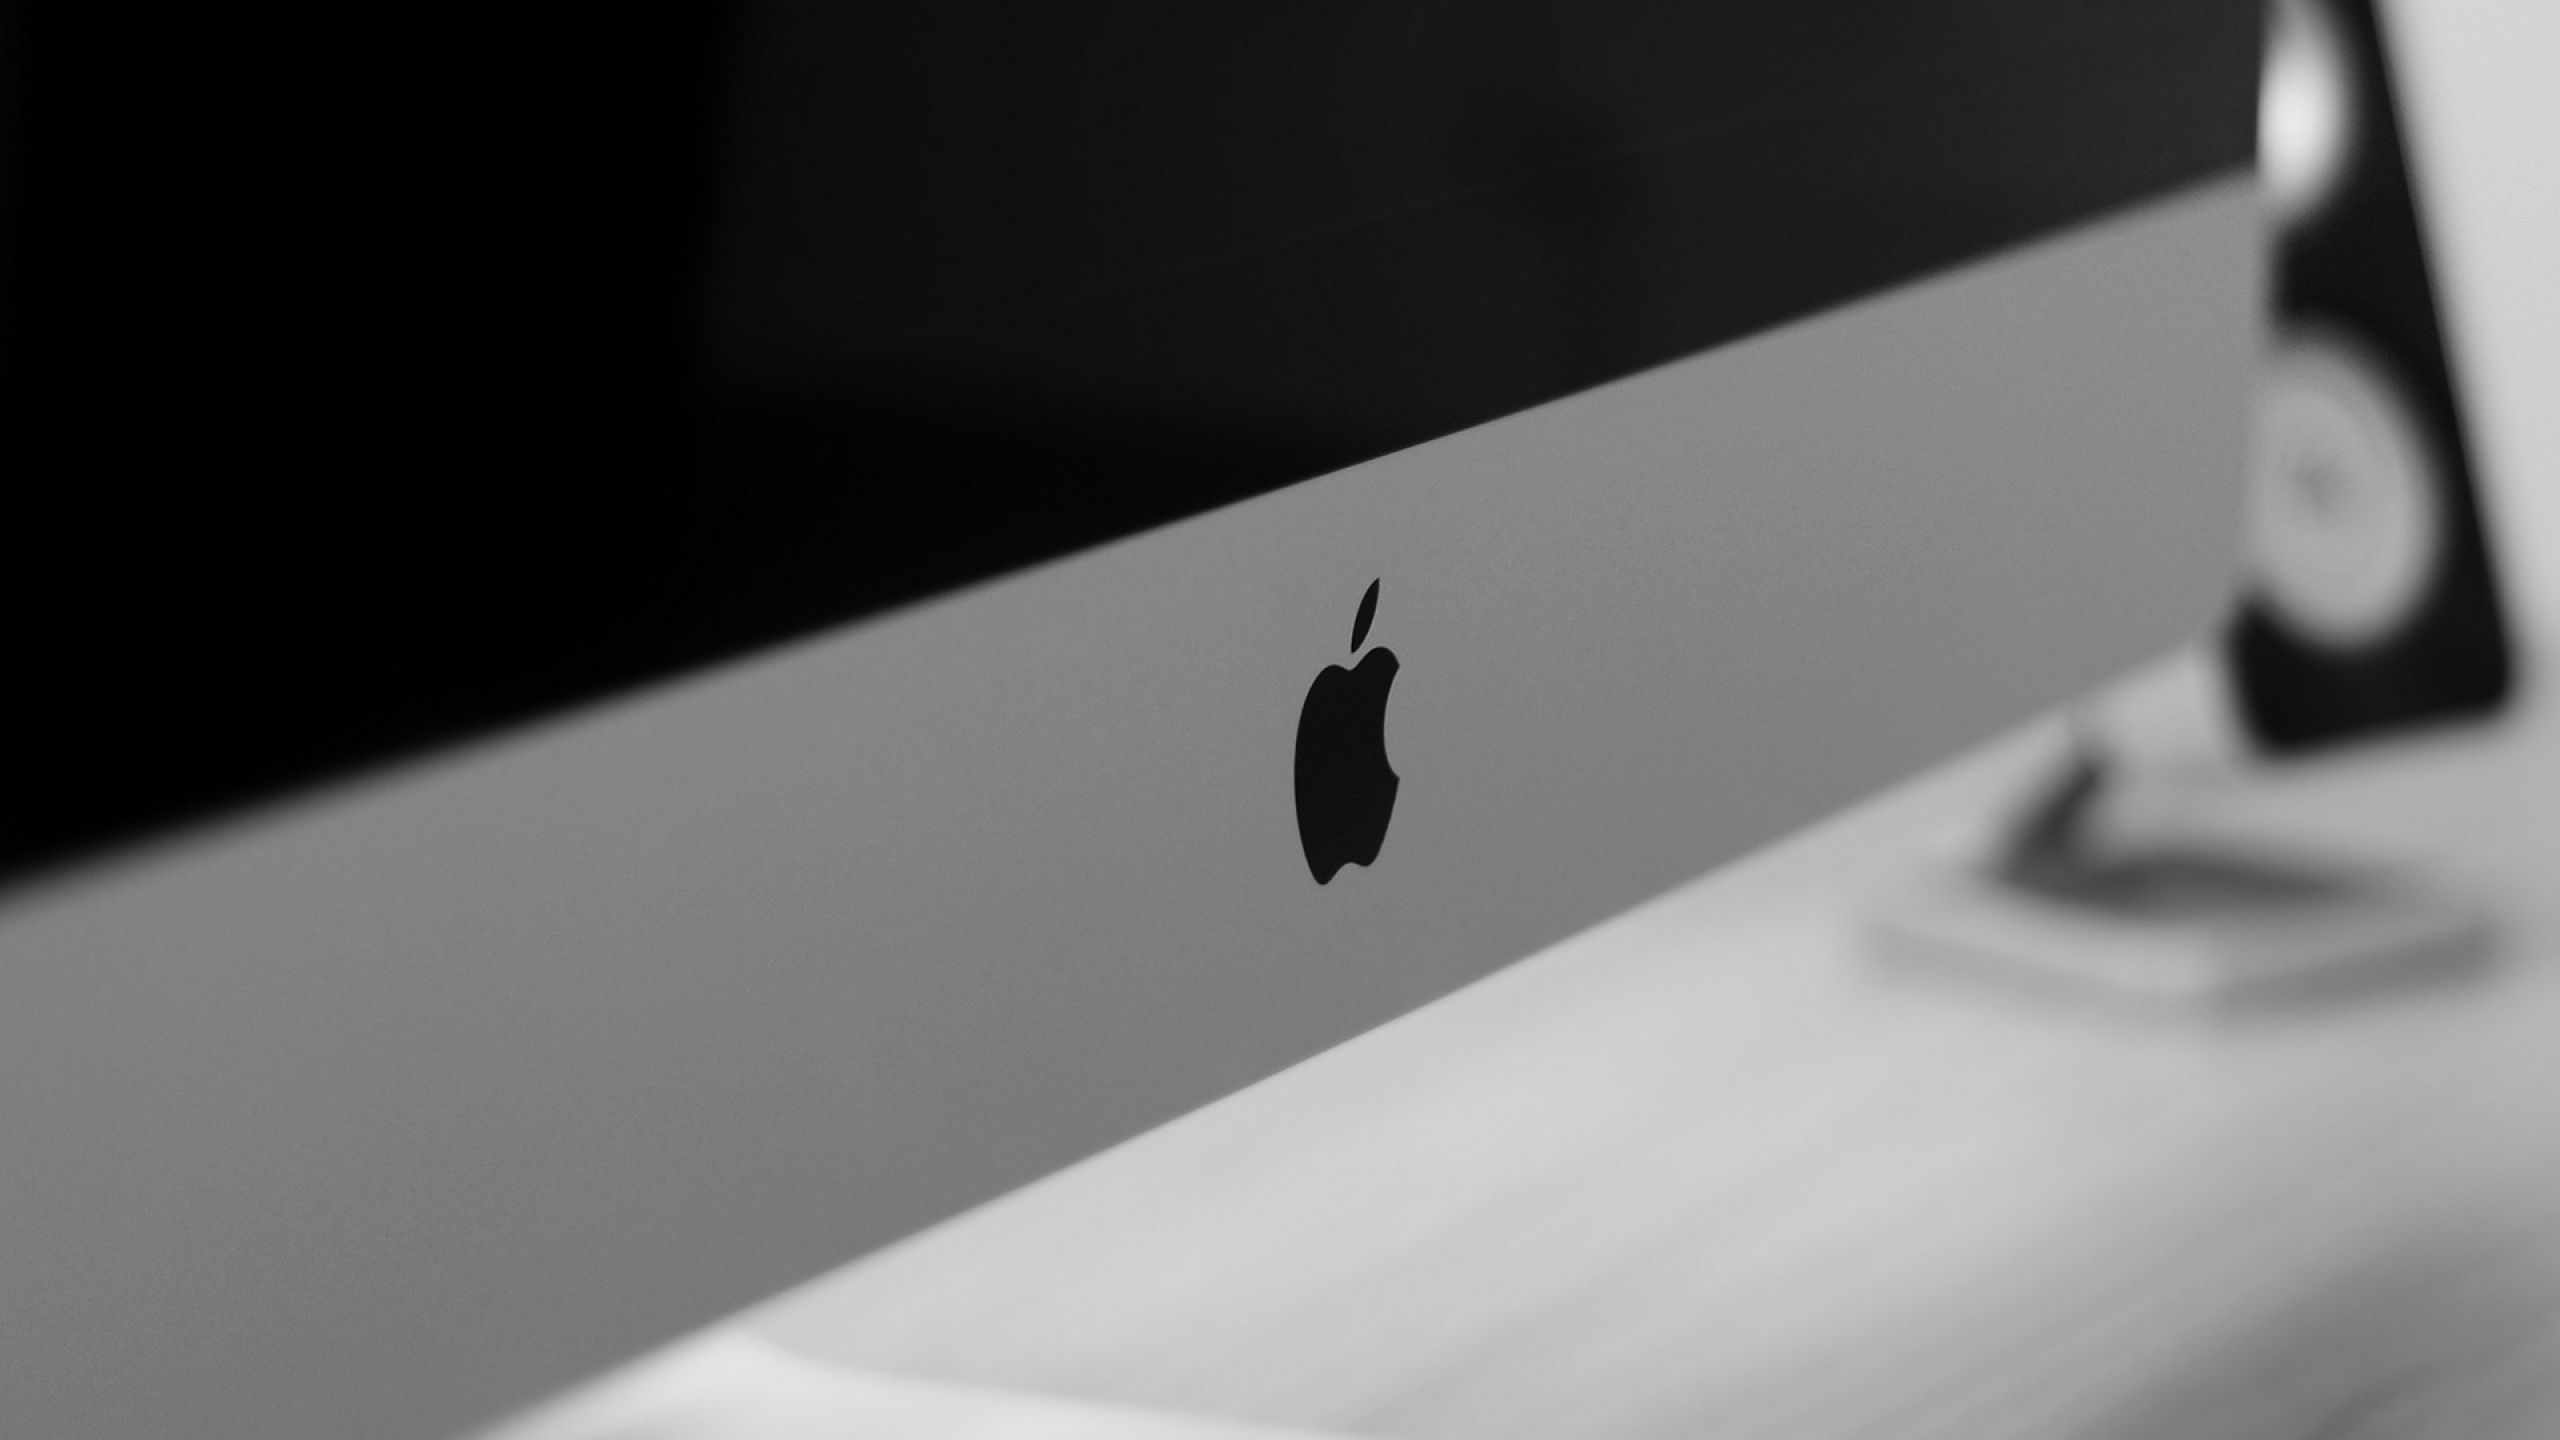 imac desktop wallpaper x